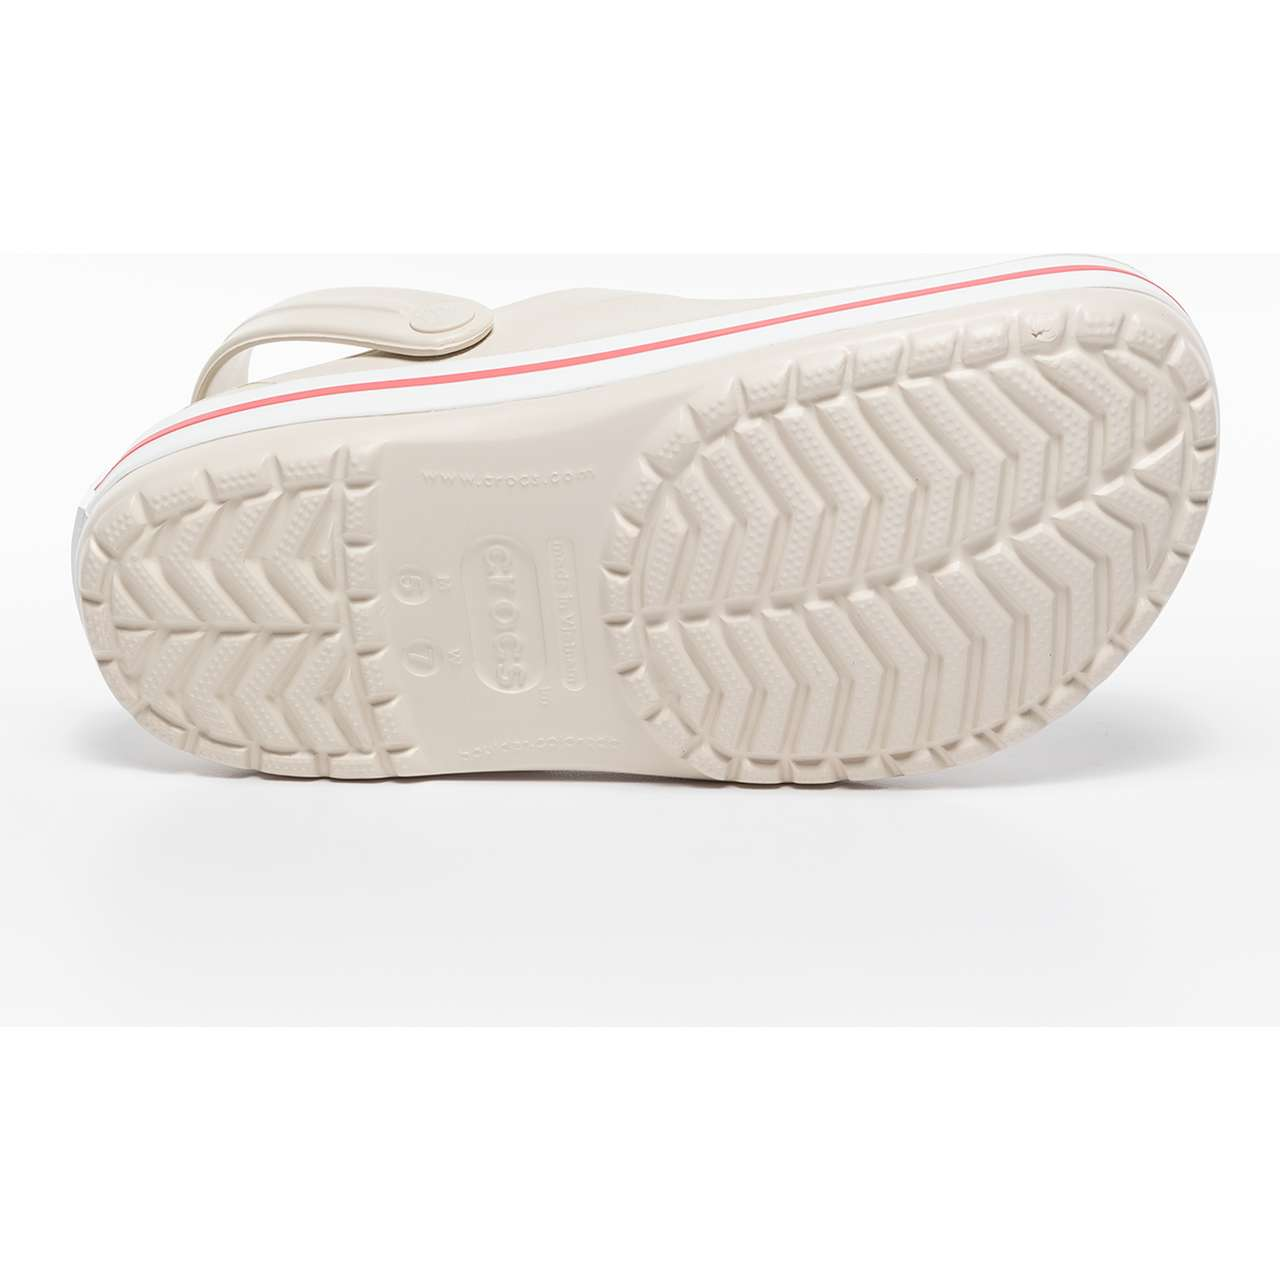 Chodaki Crocs  <br/><small>Crocband Stucco Melon </small>  11016-1AS